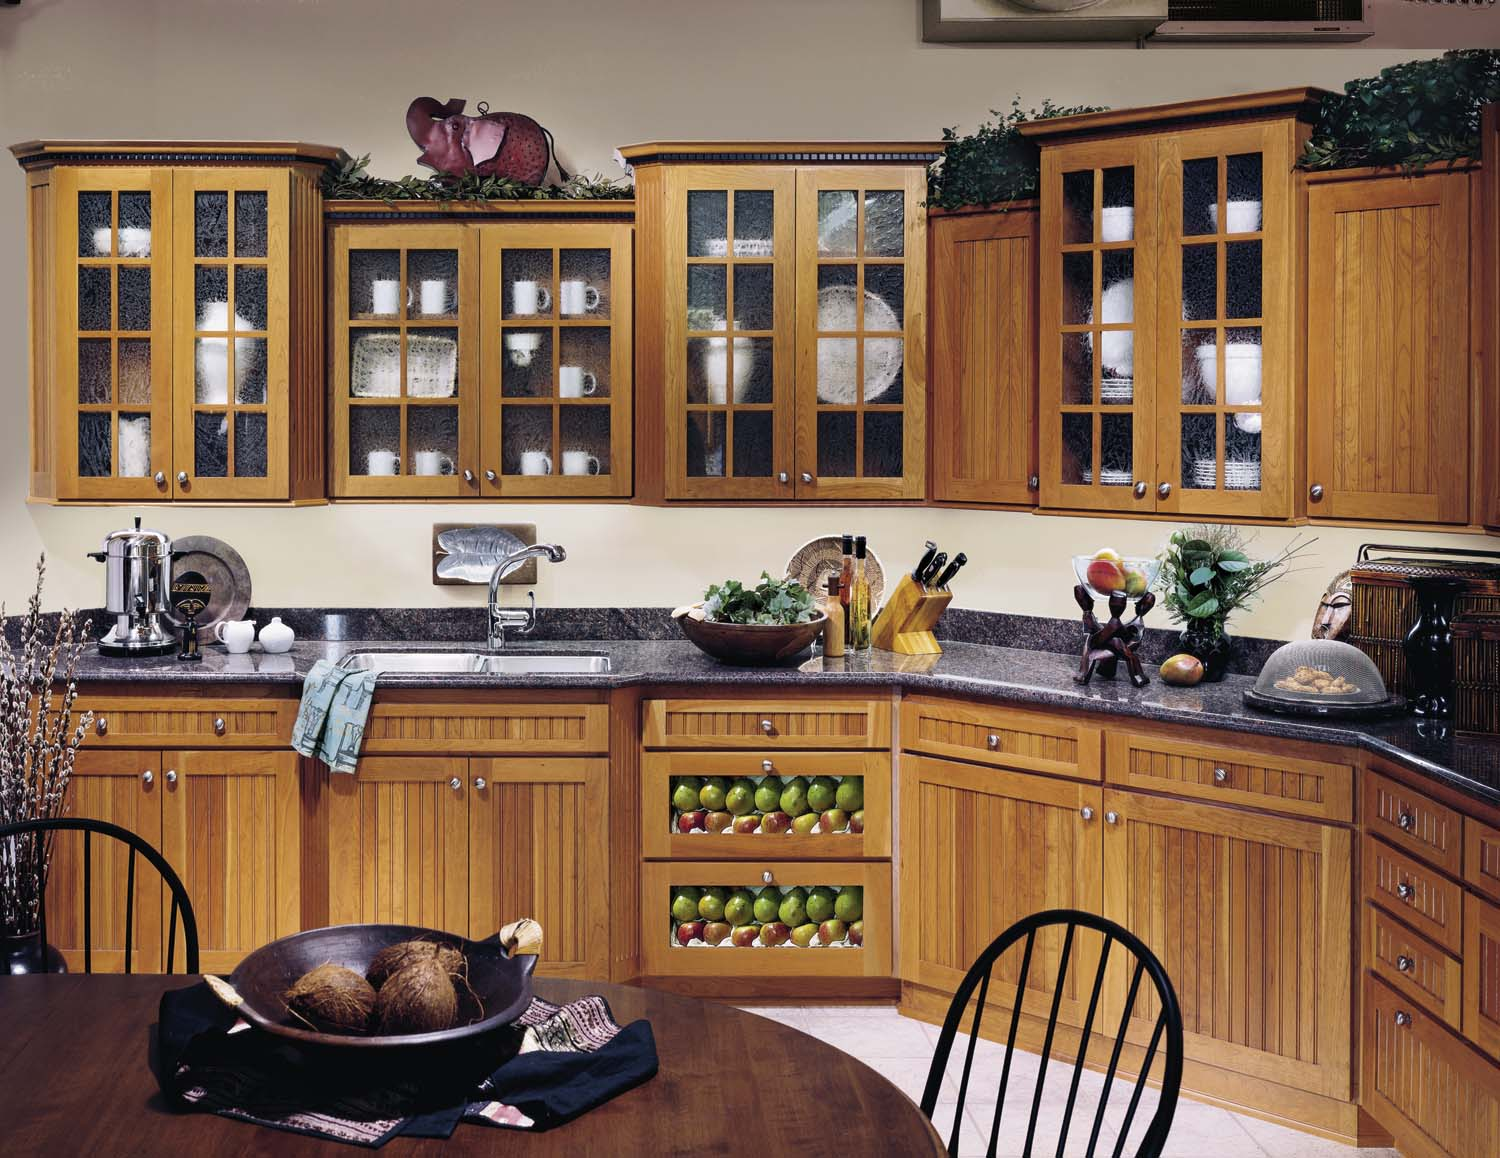 1000 options in kitchen cabinets how to choose best for for Kitchen cupboard options